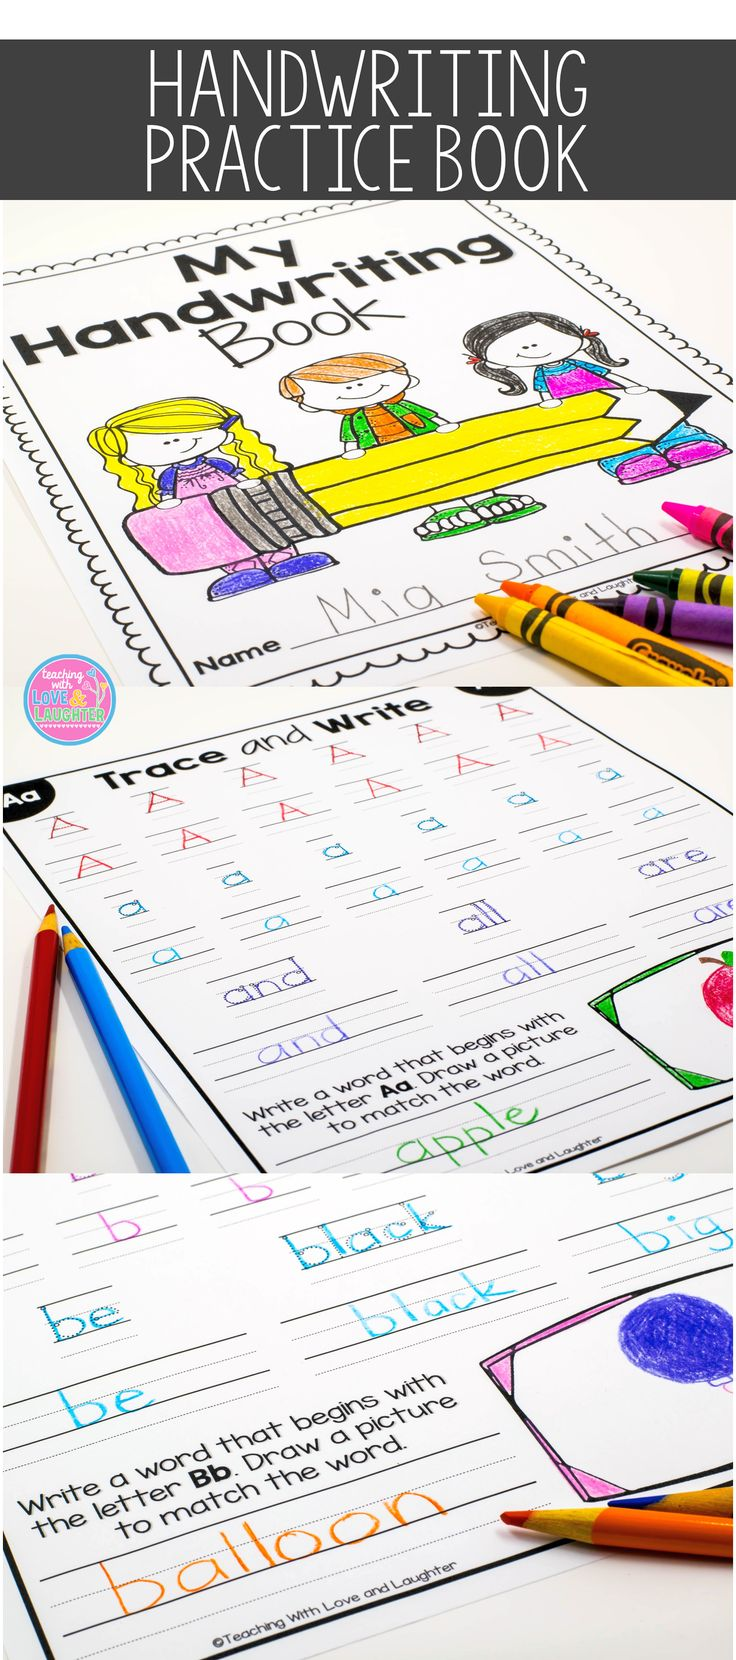 Give your students a chance to develop and perfect their handwriting skills  with this cute handwriting